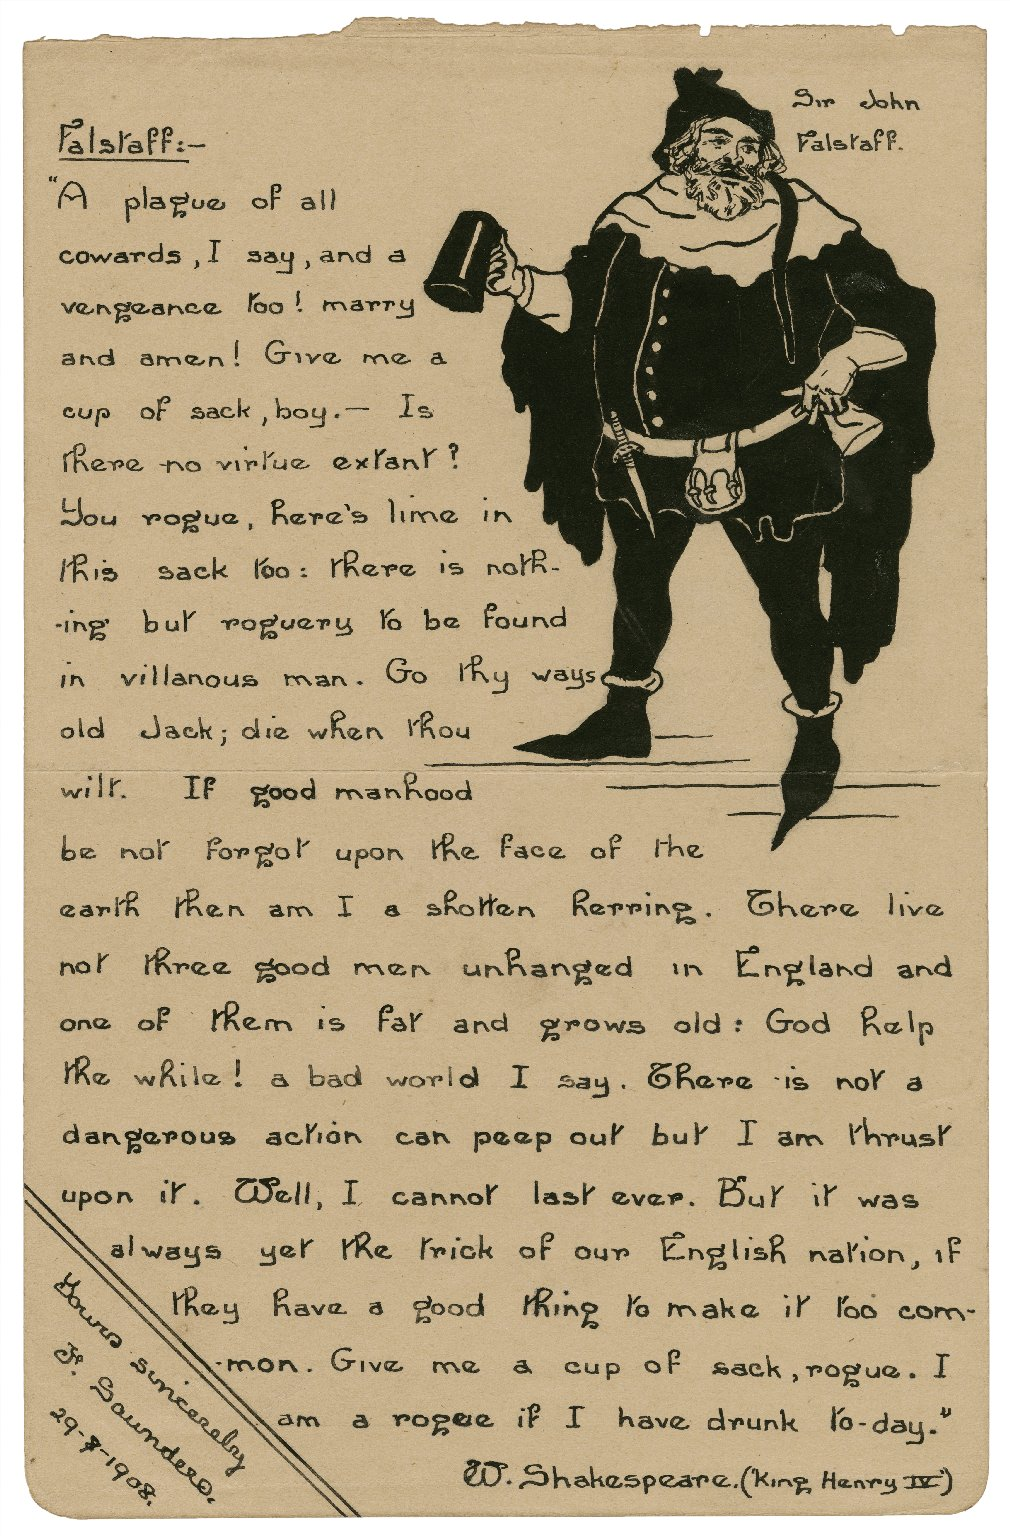 """[King Henry IV, pt. 1, II, 4, a sketch of Falstaff in the upper right-hand corner with a quotation on the left side:] """"A plague of all cowards ... I am a rogue if I have drunk today"""" [graphic] / J. Saunders."""